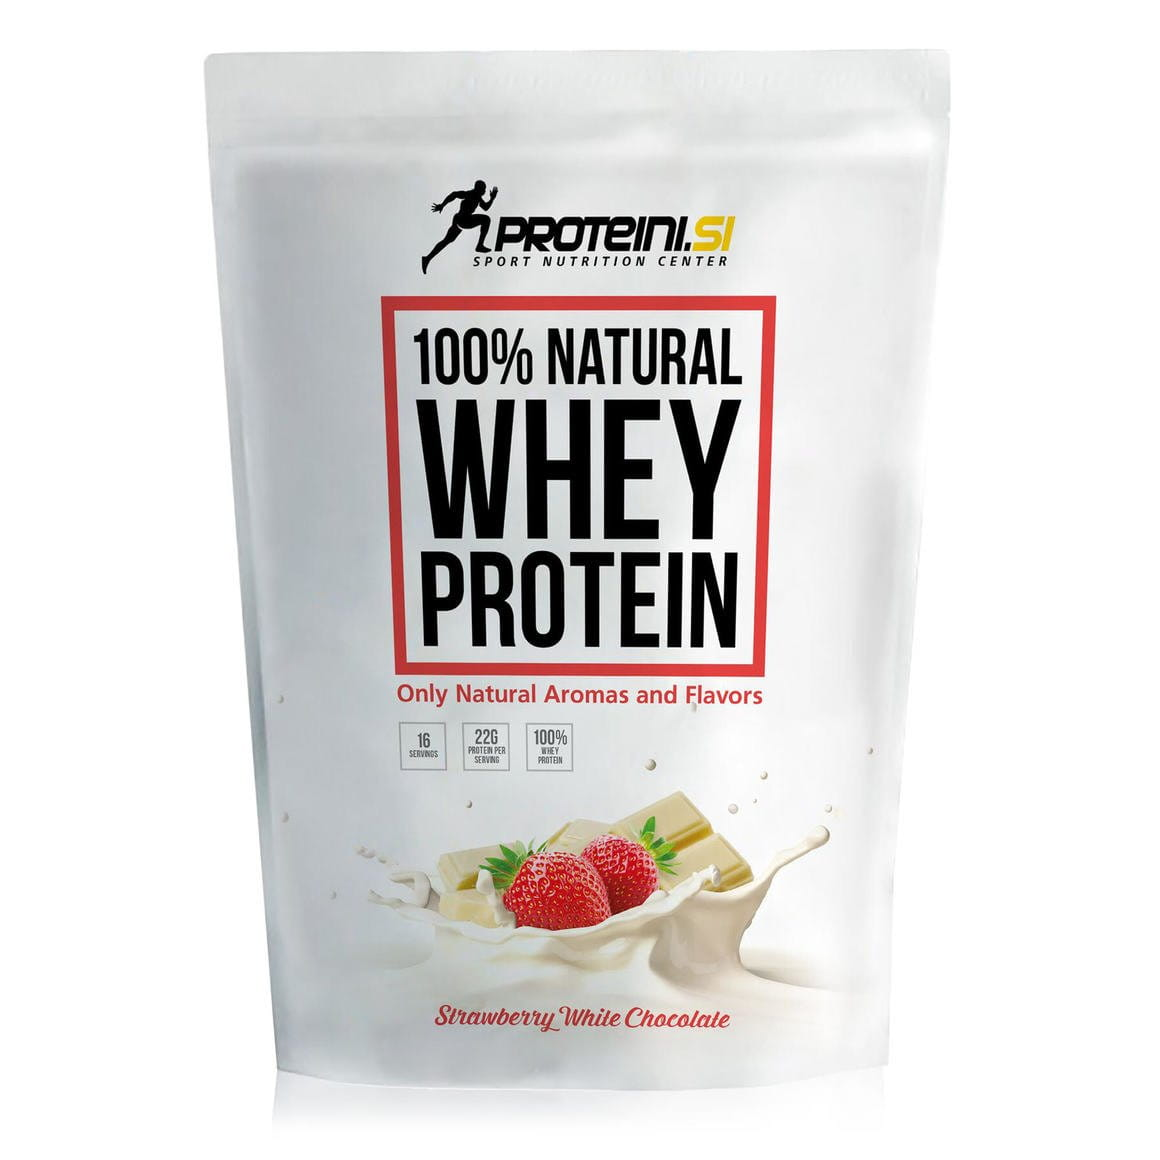 Proteini 100% Natural Whey Protein, 500g